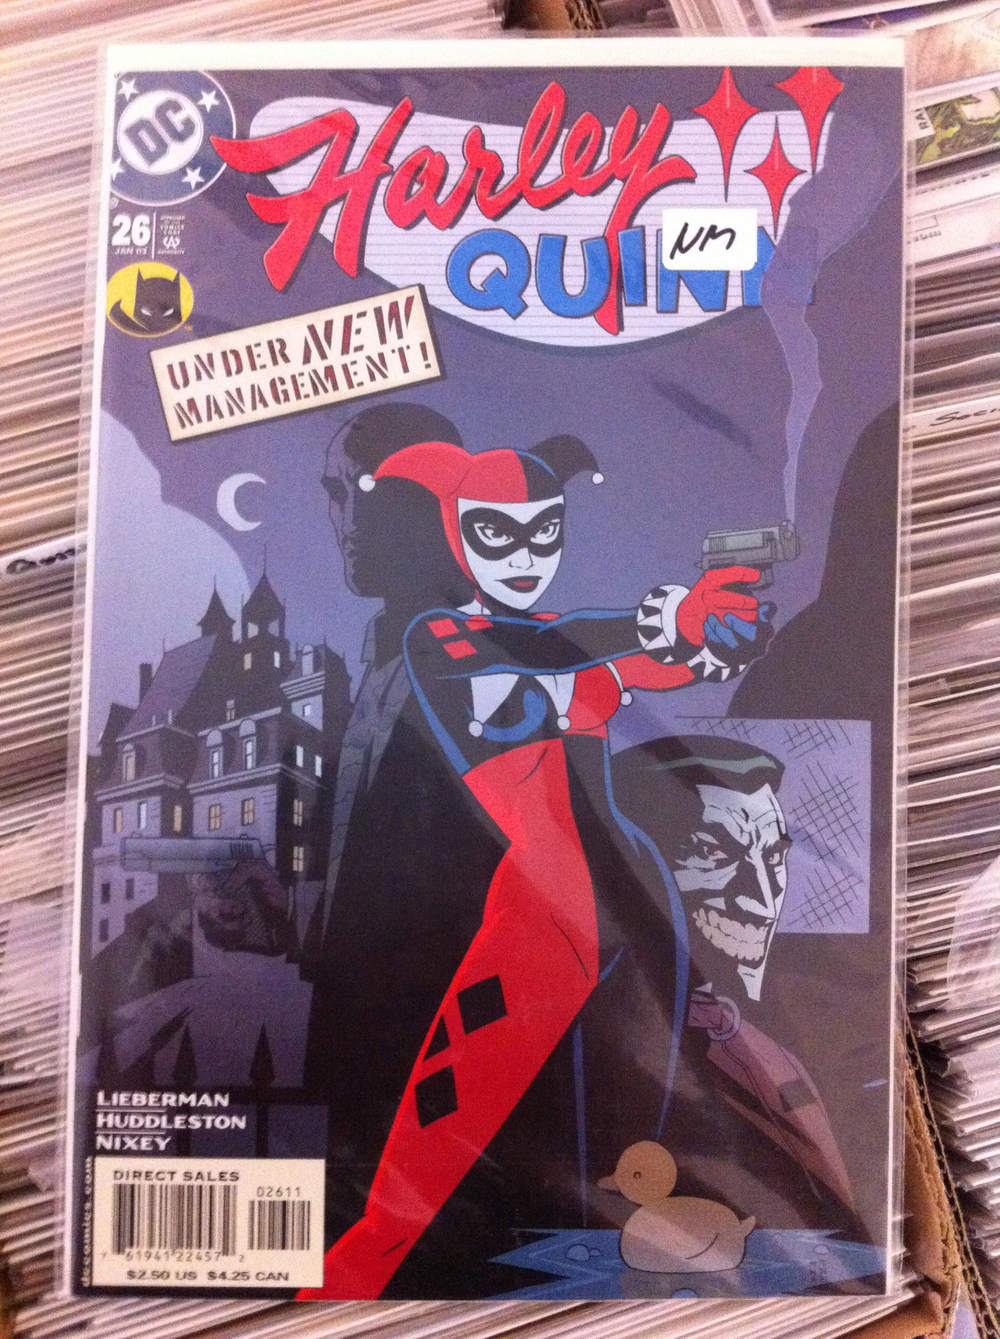 HARLEY QUINN #26-38 VOl 1 THe complete 2nd half of the 1st series where it takes a new direction with the new writing and artist team of AJ Lieberman and Mike Huddleston. THis is a more Crime noir take on Harley and was very popular in it's time....Not to say that this series is not hot now....